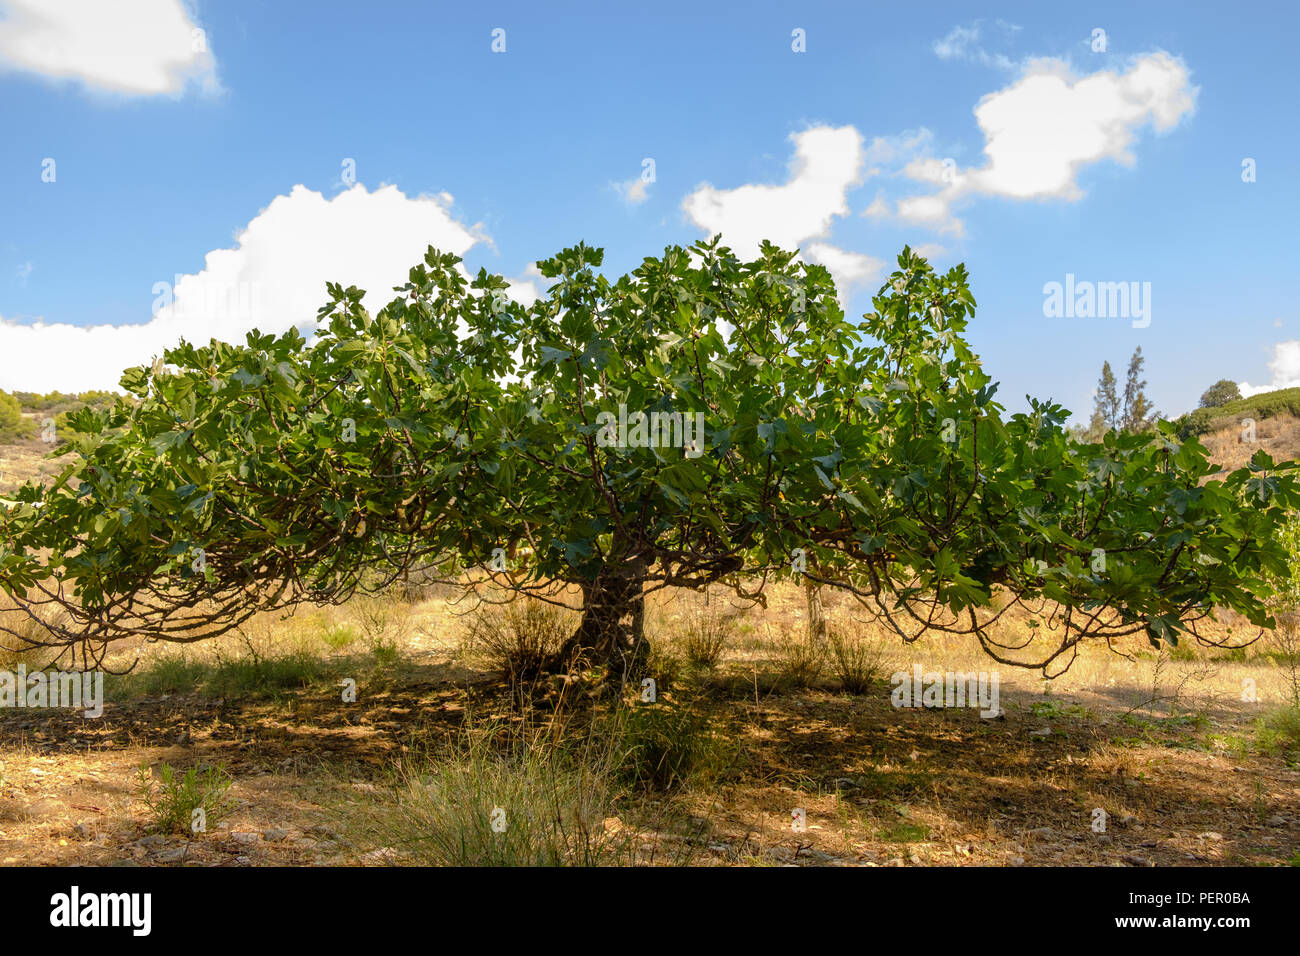 Common fig tree ( Ficus Carica ) of the Mulberry family, flourishing  in the July summer Greek heat, Saronida, Greece, Europe. Stock Photo